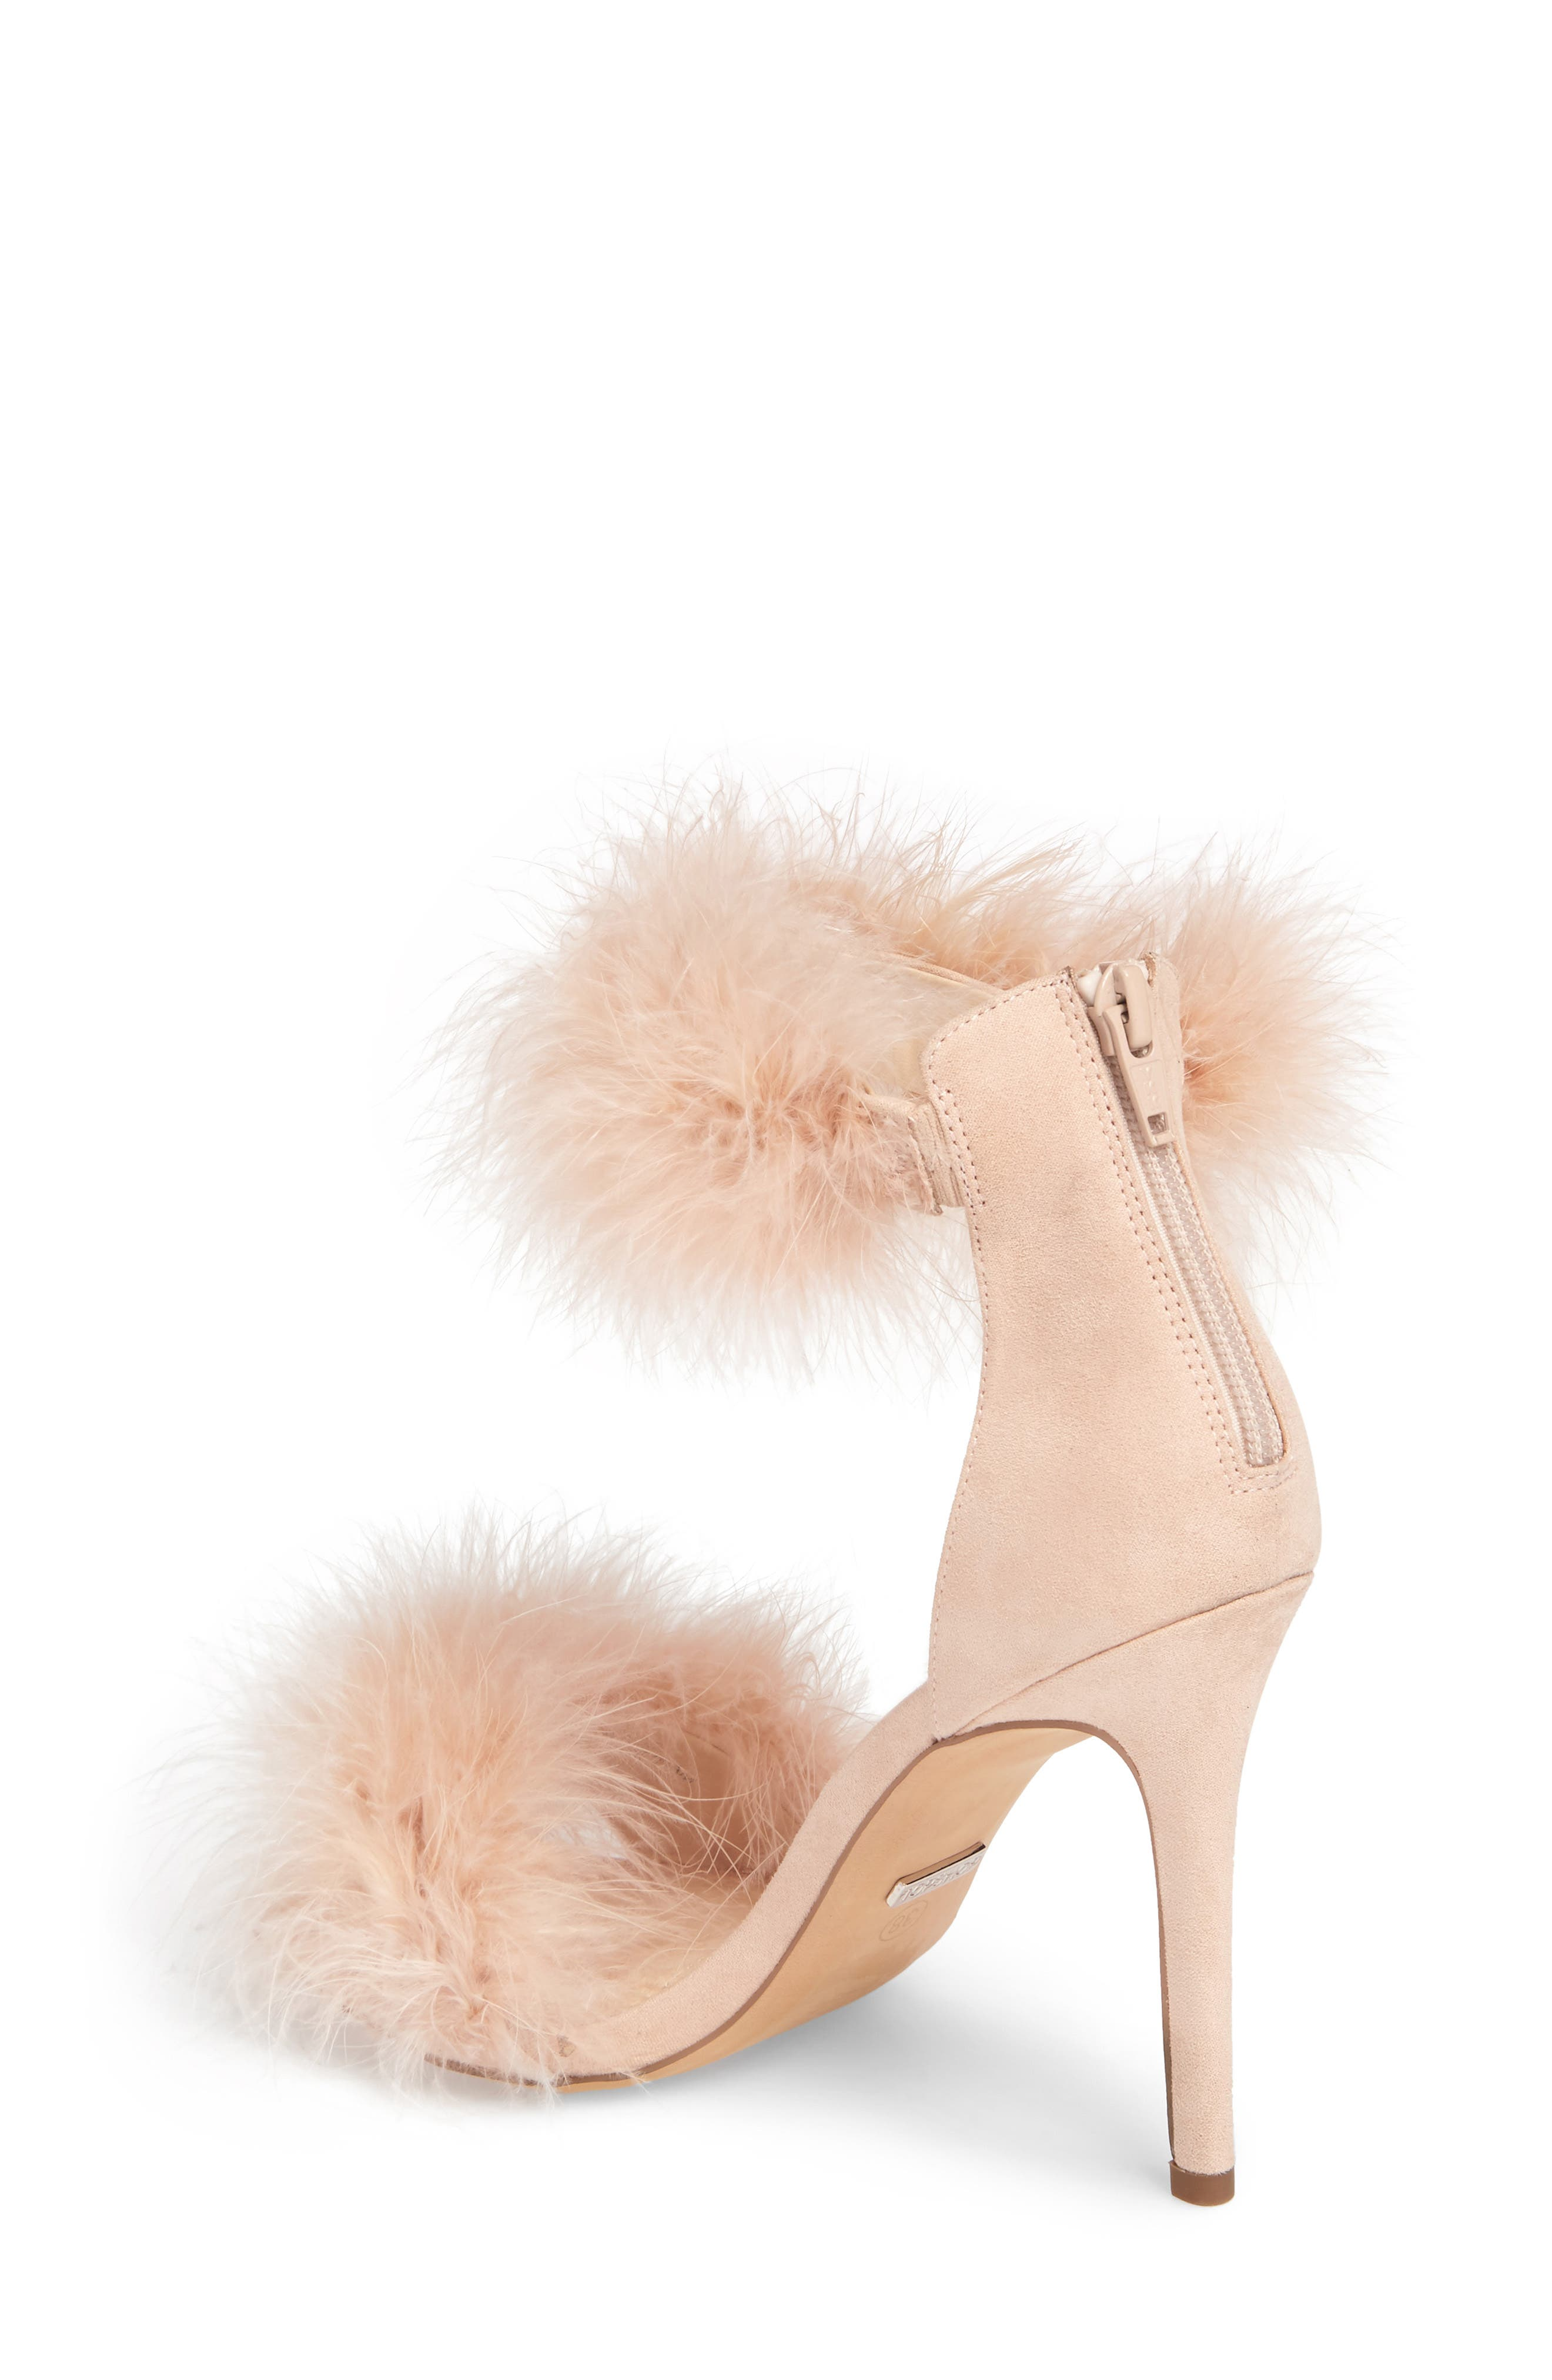 Feather Strap Sandal,                             Alternate thumbnail 2, color,                             Nude